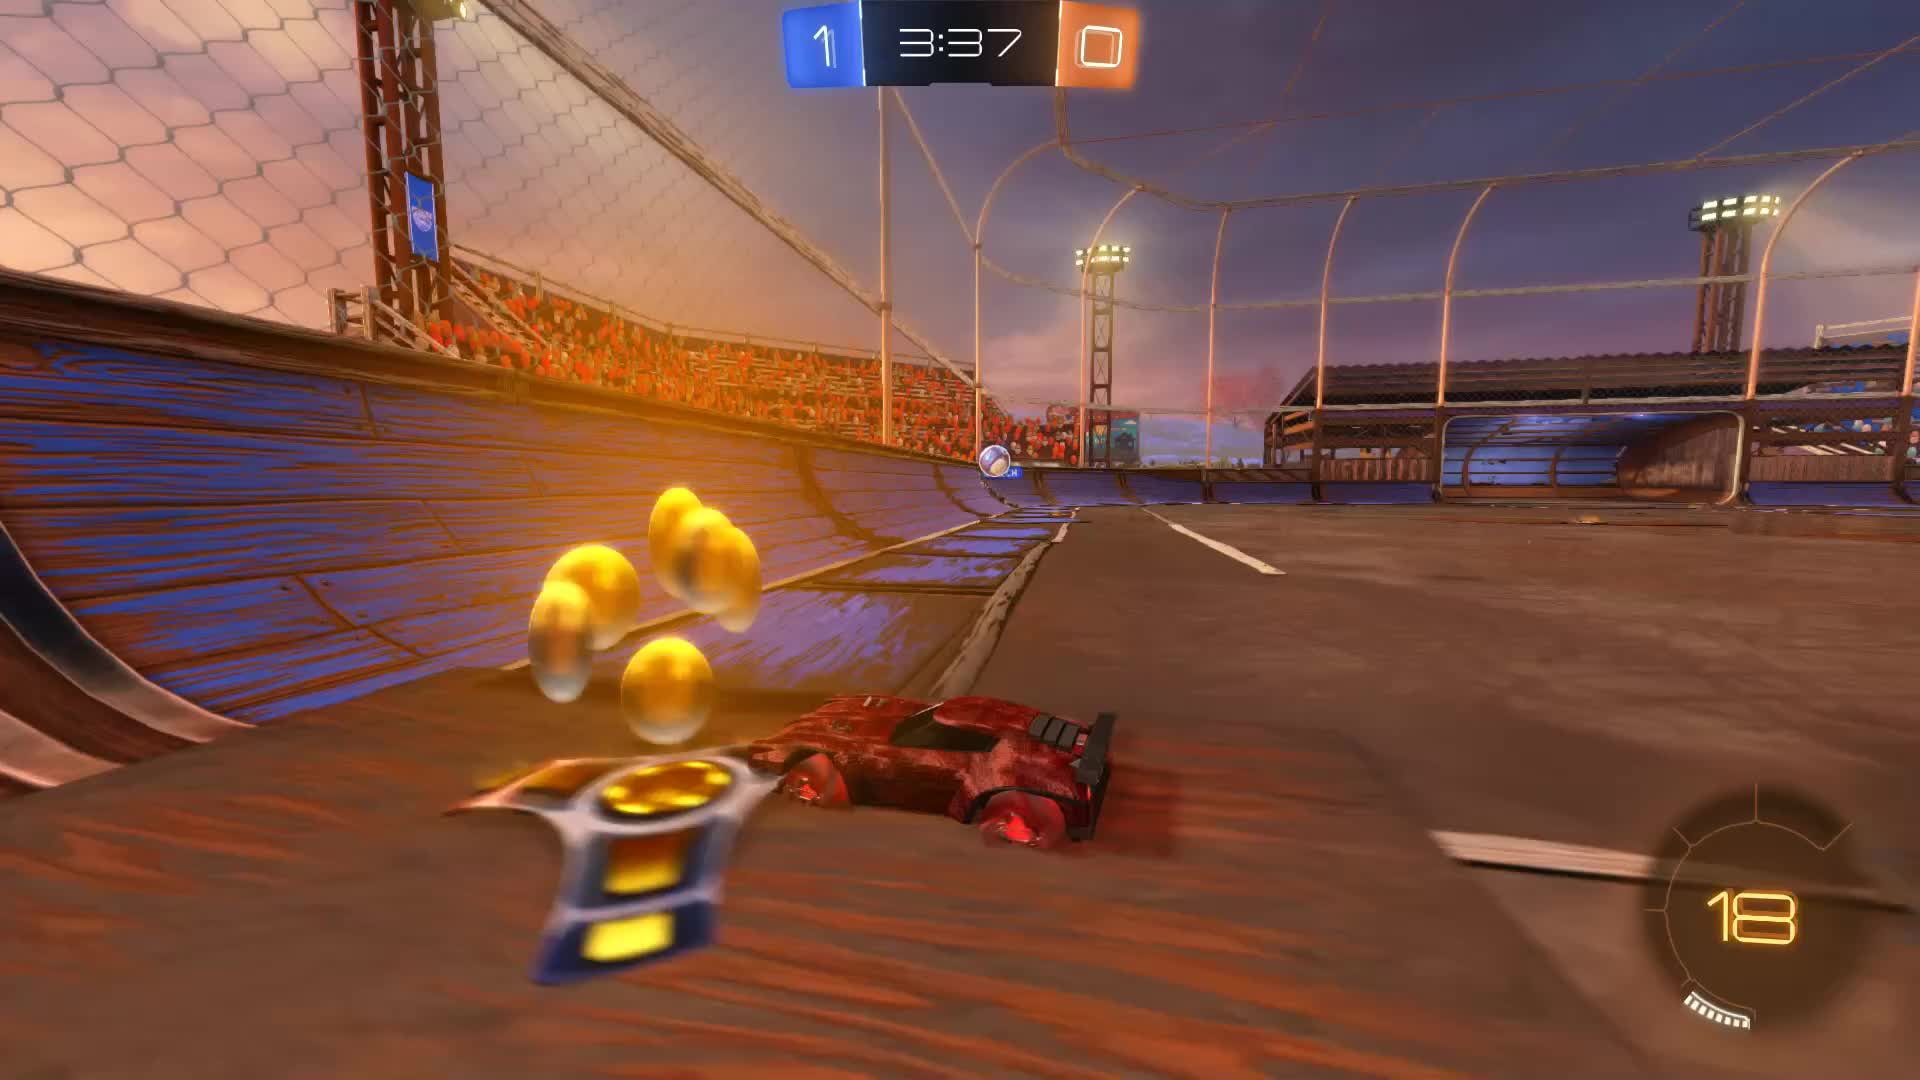 Gif Your Game, GifYourGame, Goal, Rocket League, RocketLeague, [CARBON] [ISUK] Viran, Goal 2: [CARBON] [ISUK] Viran GIFs